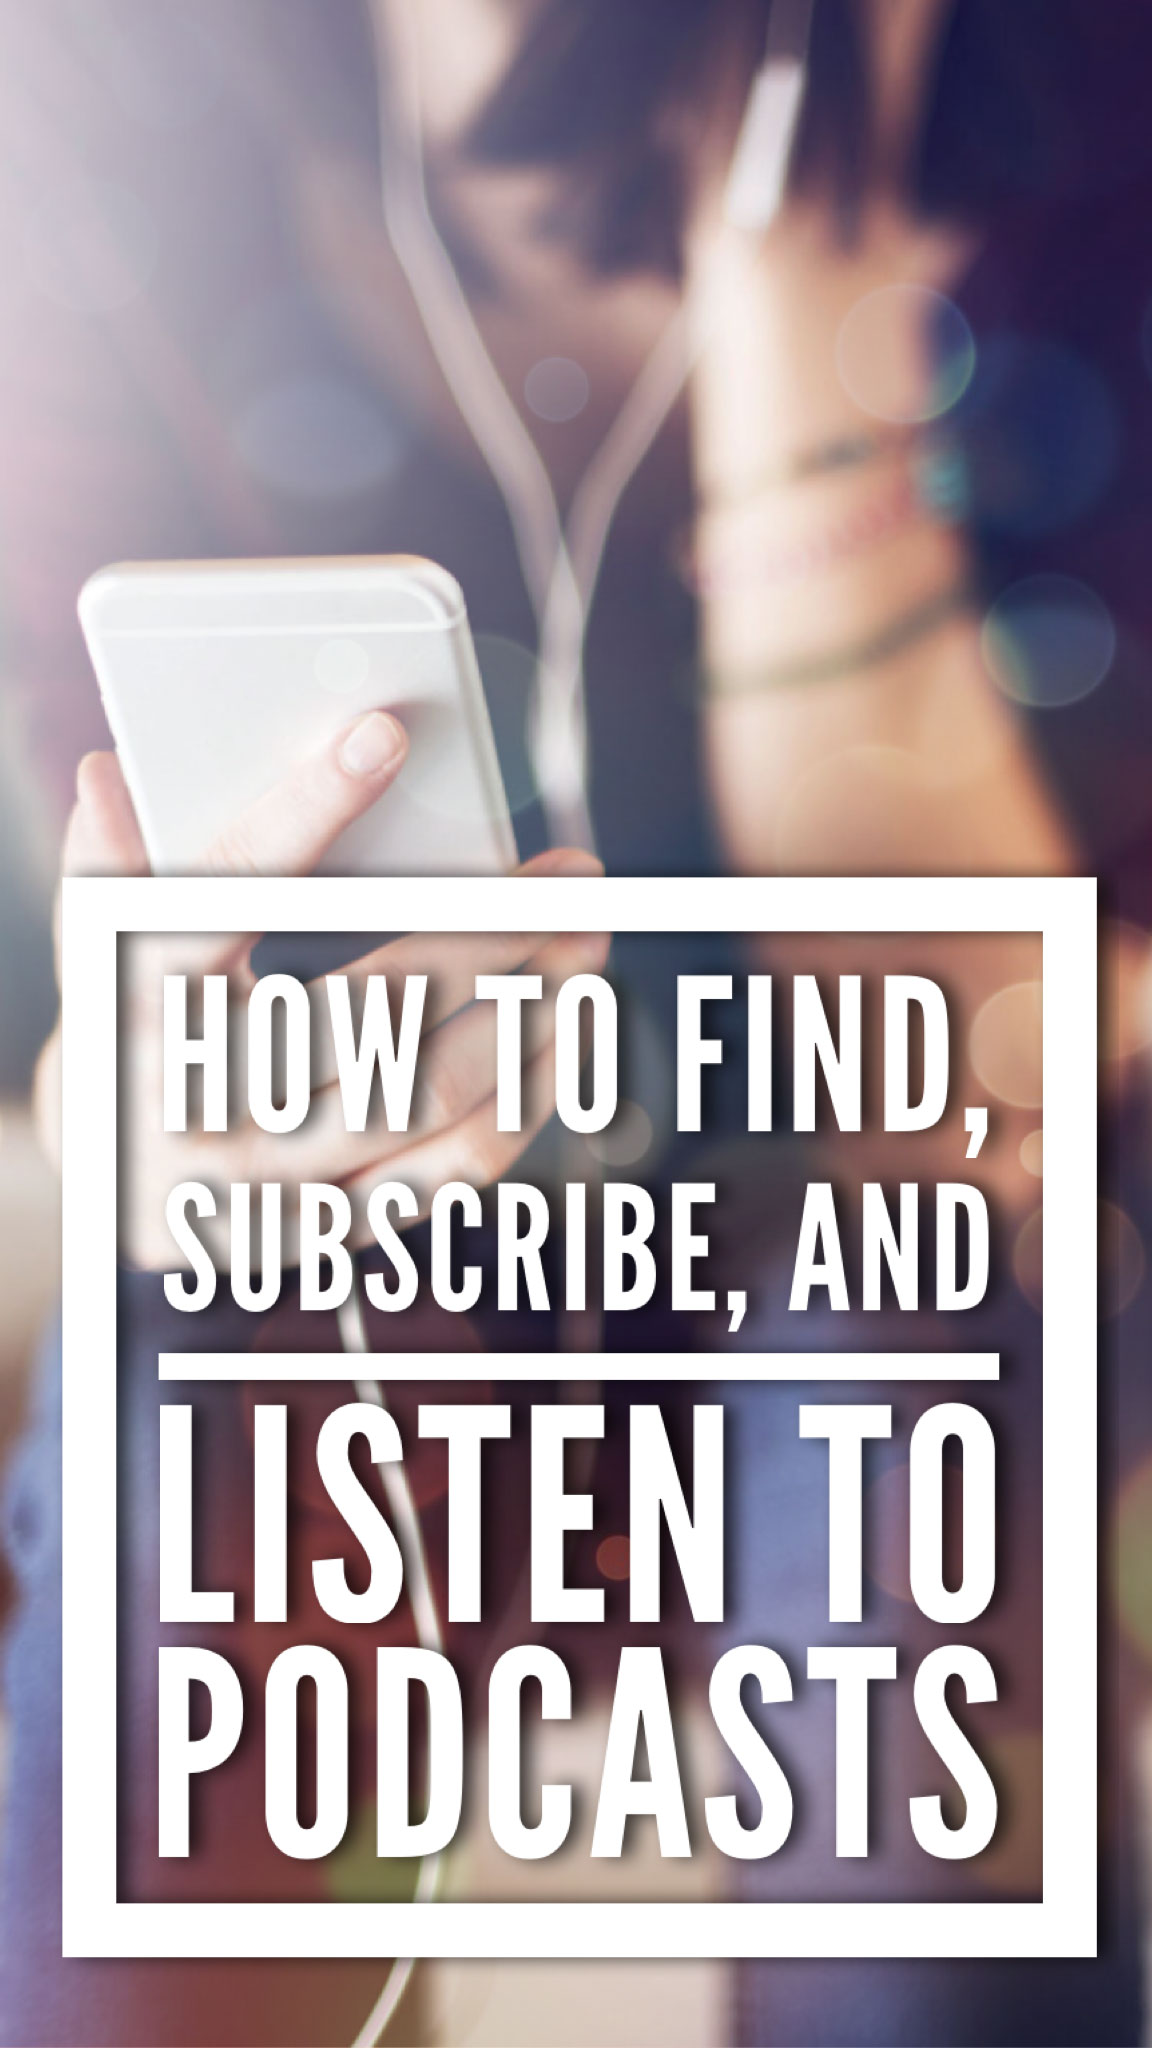 How to Find, Subscribe, and Listen to Podcasts